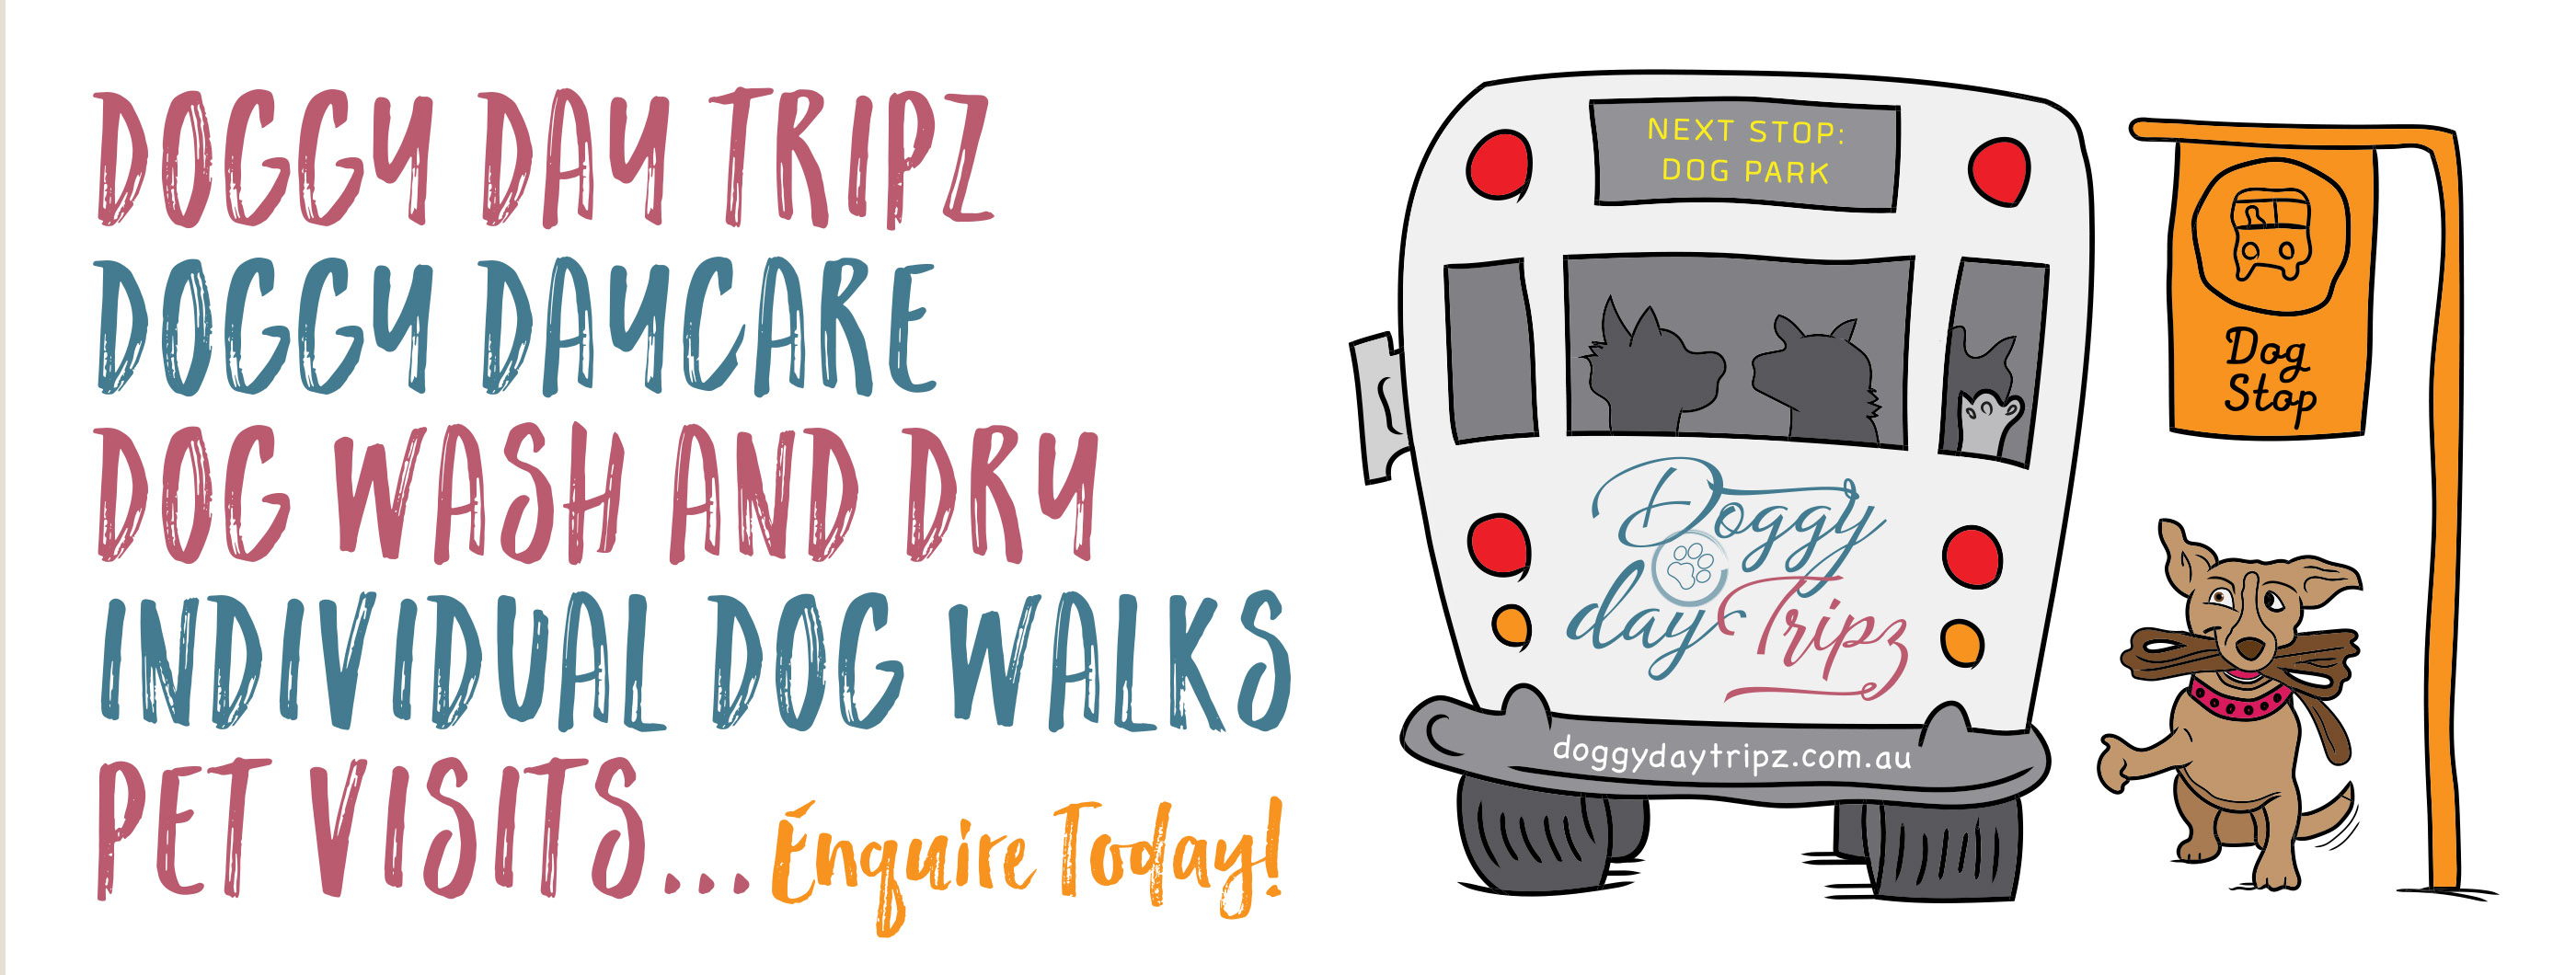 Doggy Day Tripz facebook banner idea